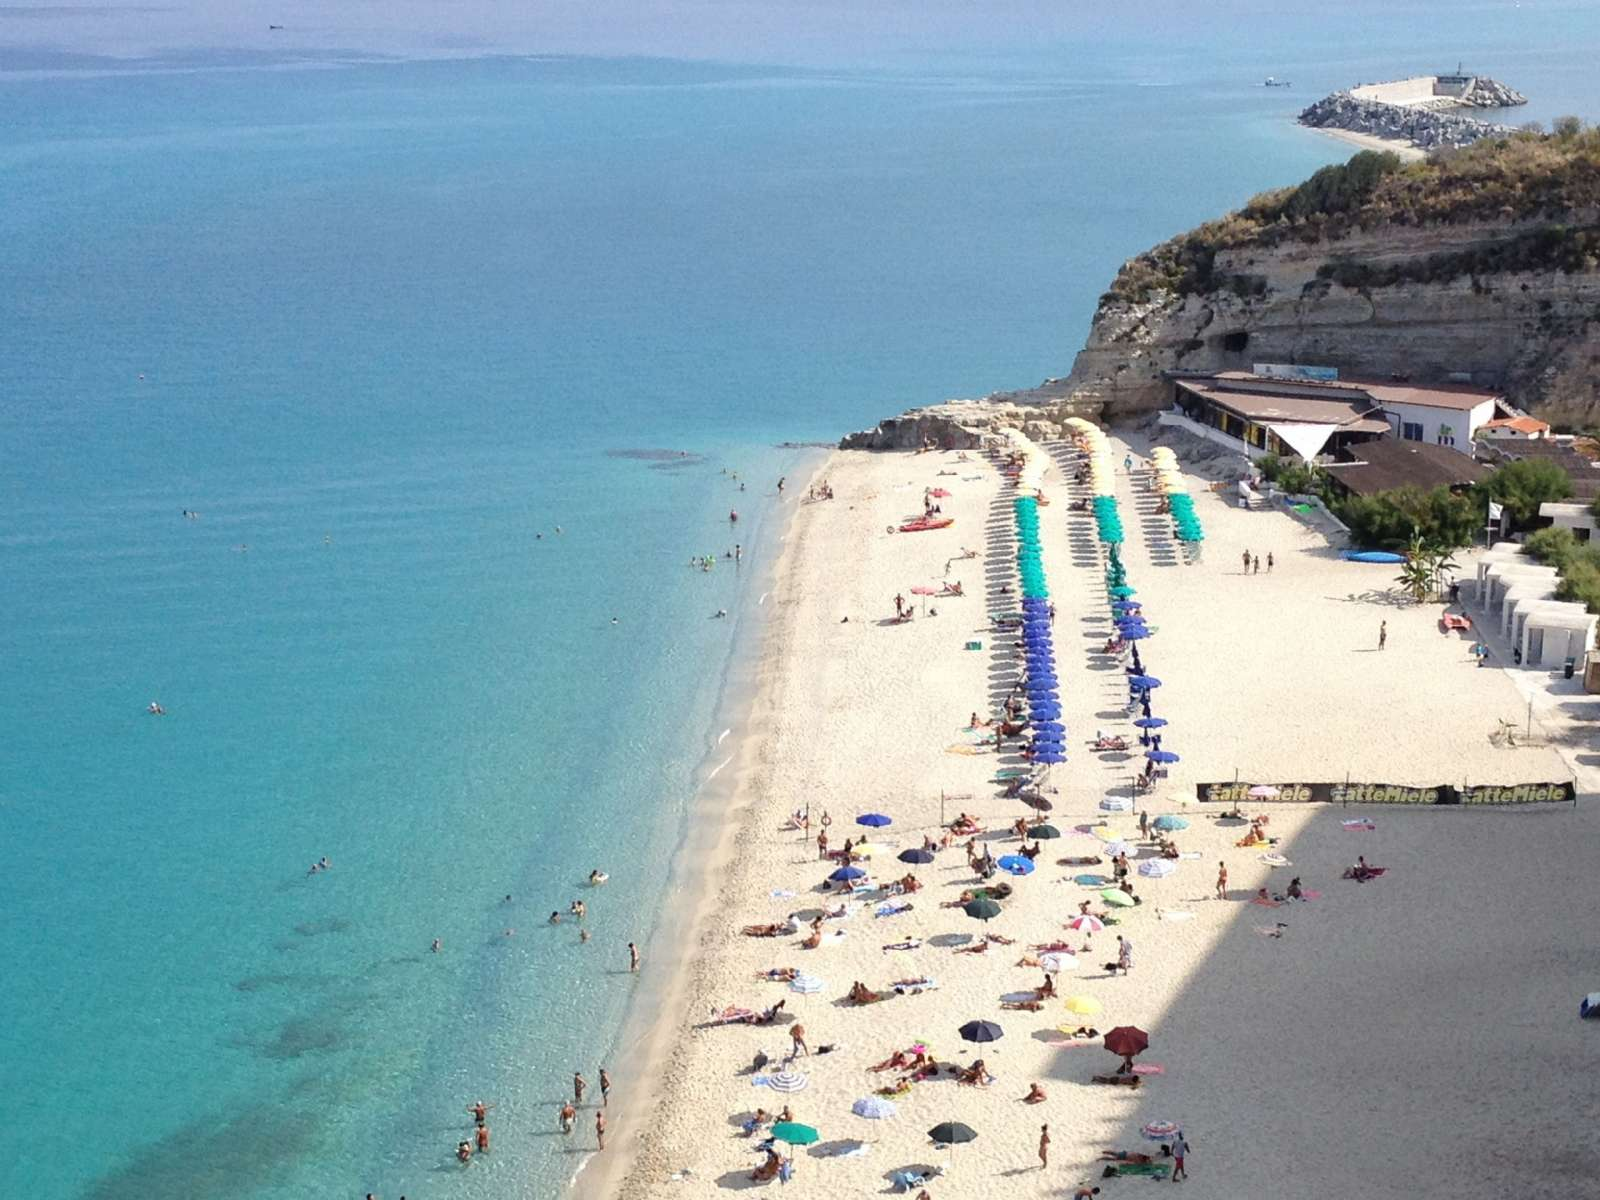 The beach in Tropea